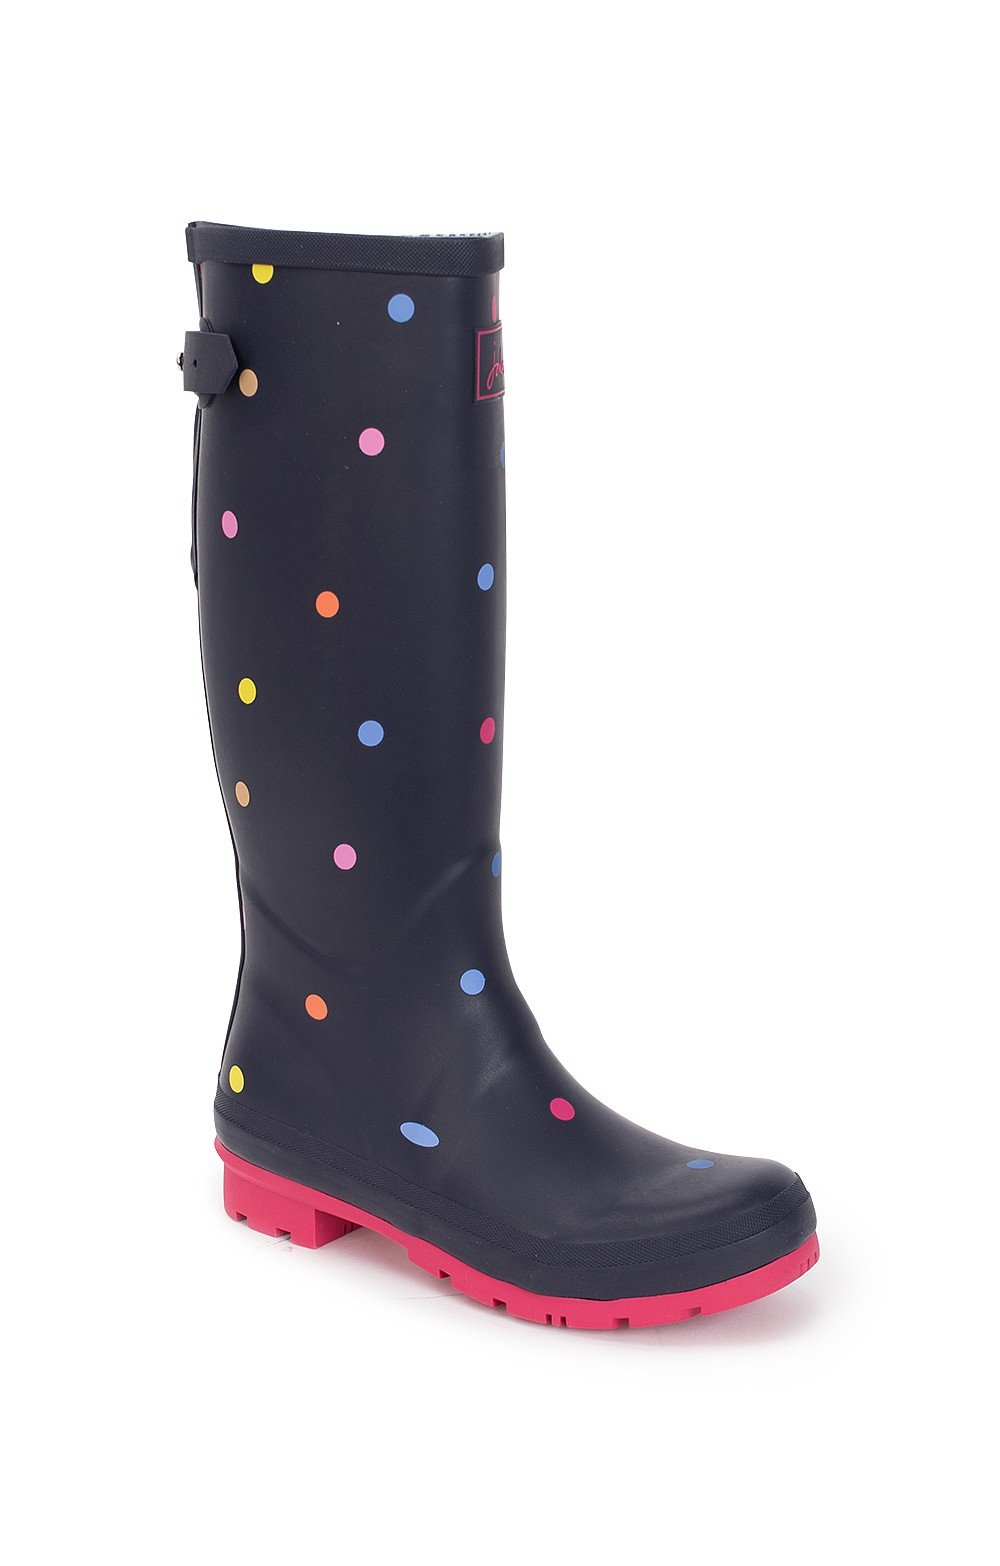 Ladies Joules Printed Welly with Gusset - House of Bruar 092428cb5